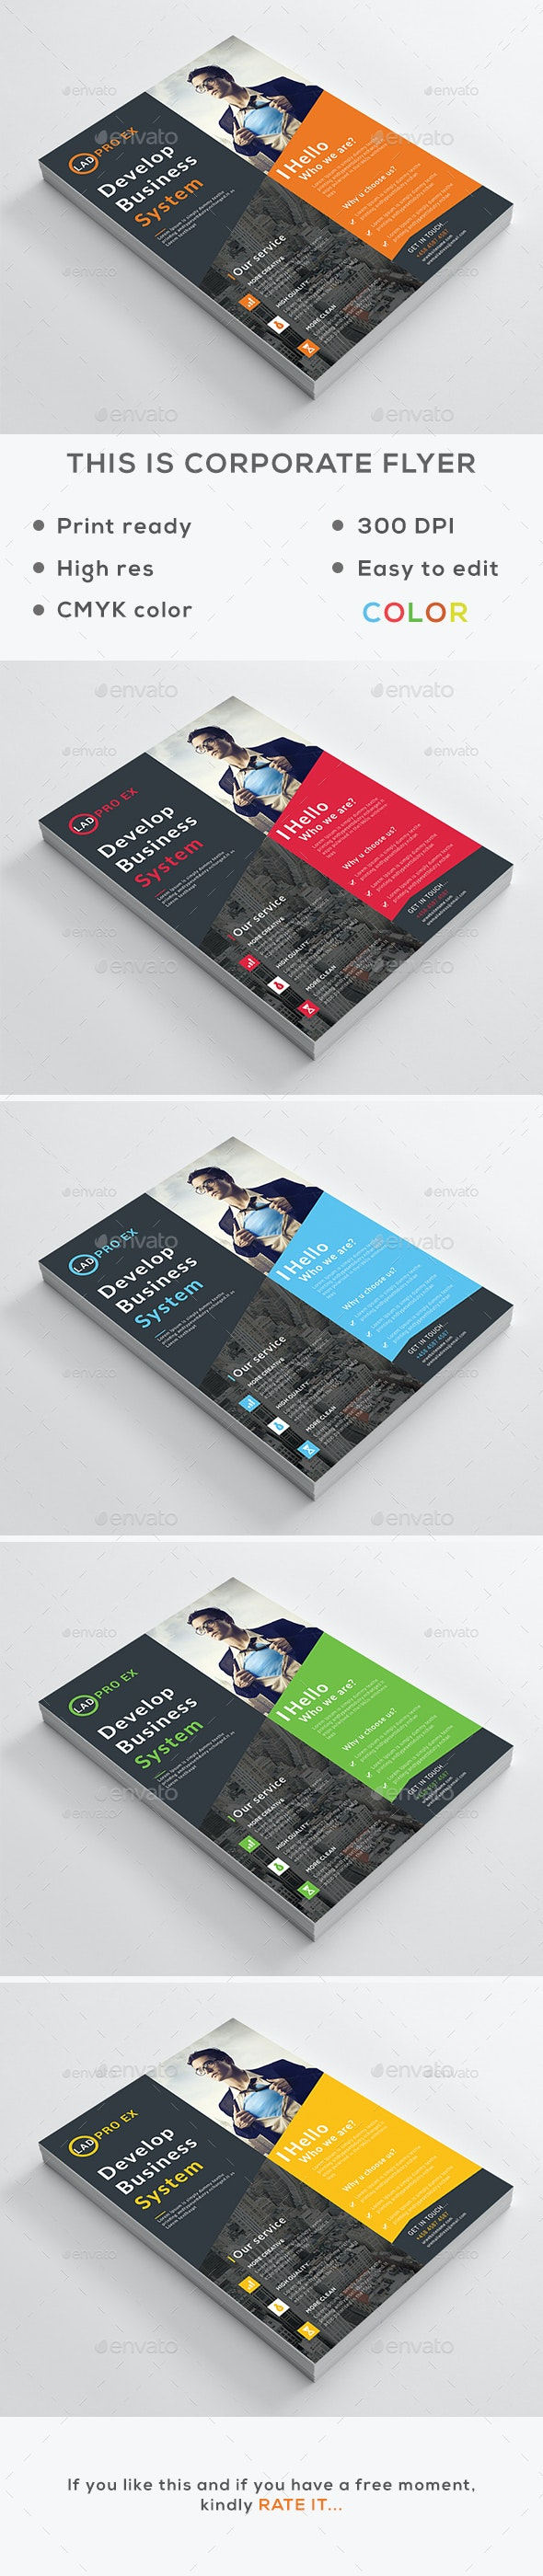 Corporate Flyer v1 - Corporate Flyers